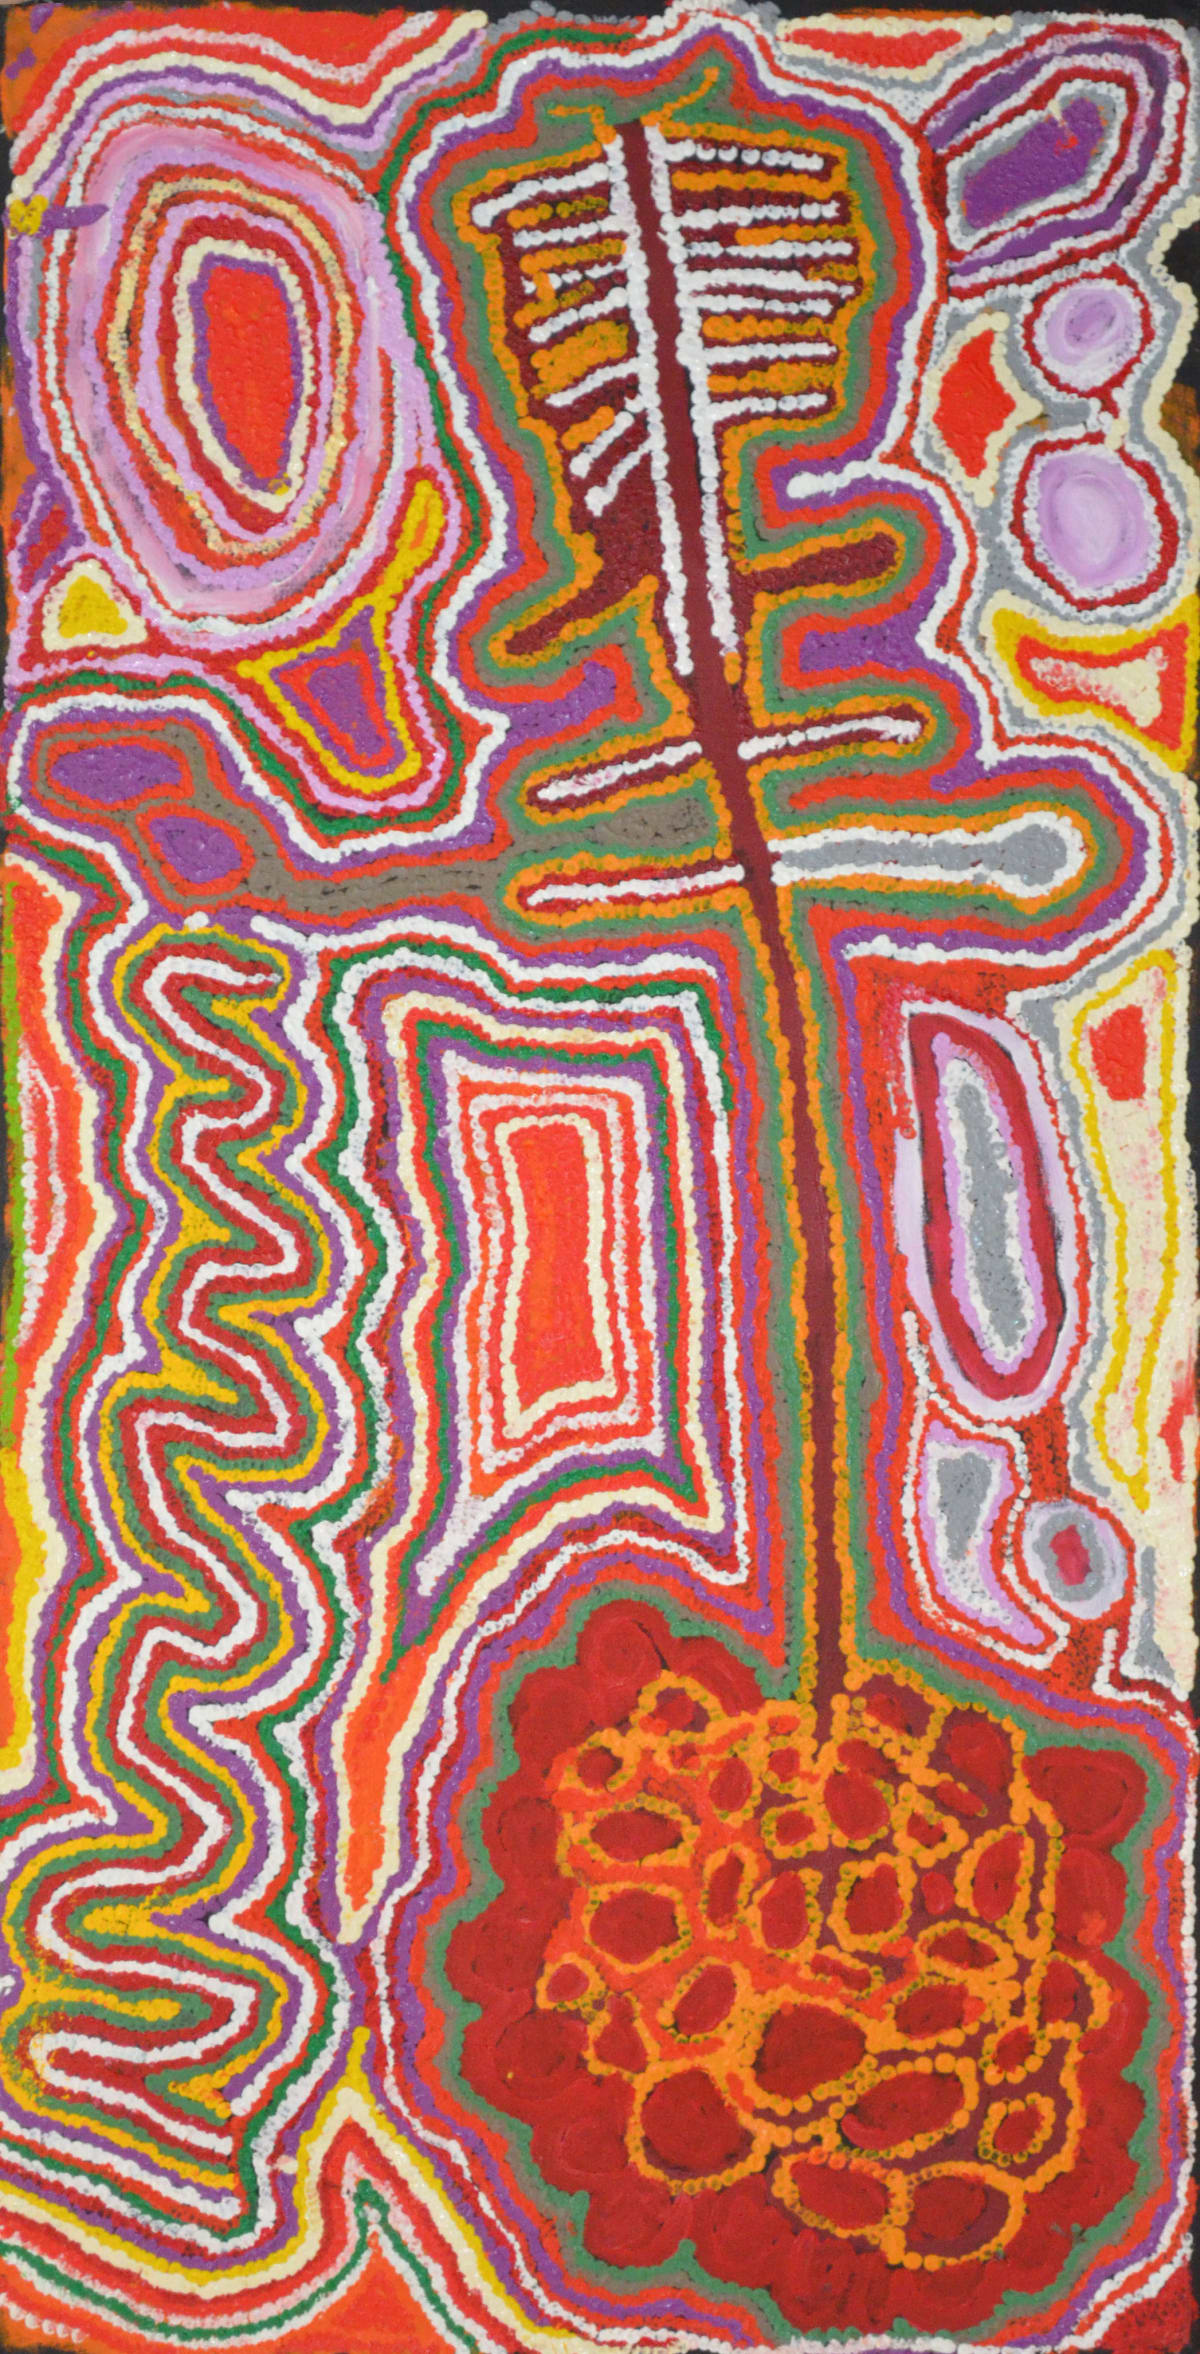 Jimmy Donegan Pukara acrylic on linen 123 x 61 cm